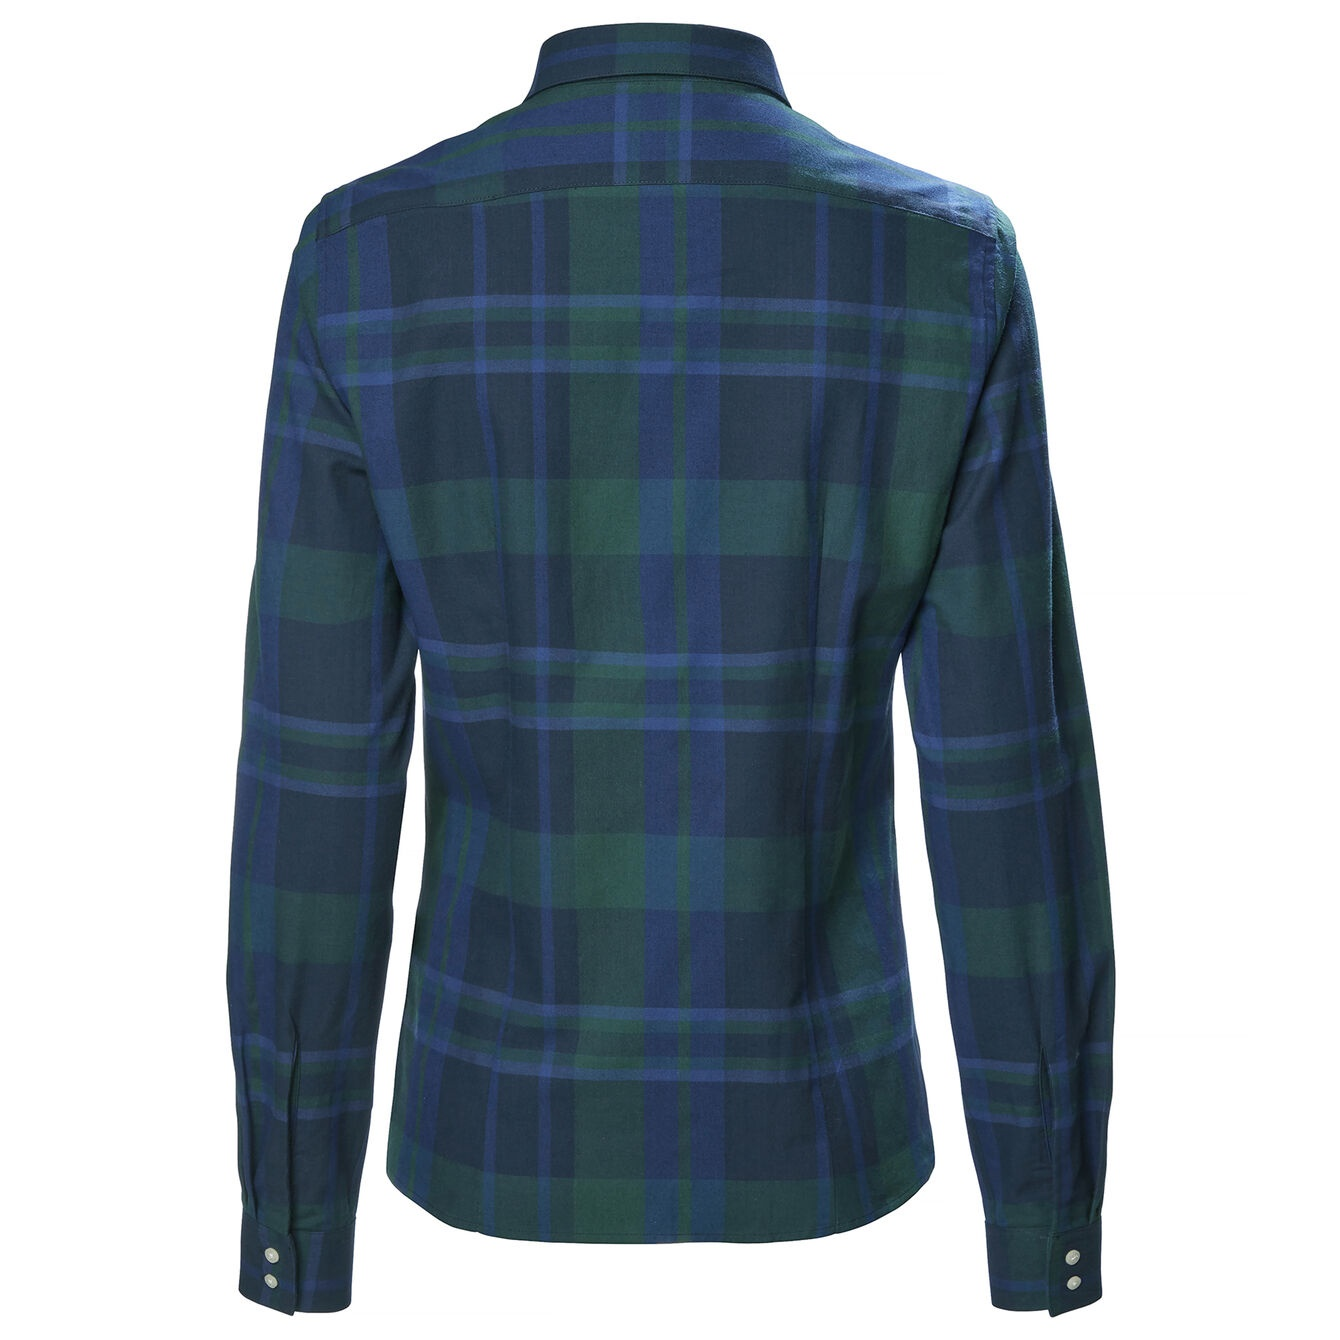 TATTERSALL CHECK SHIRT FW